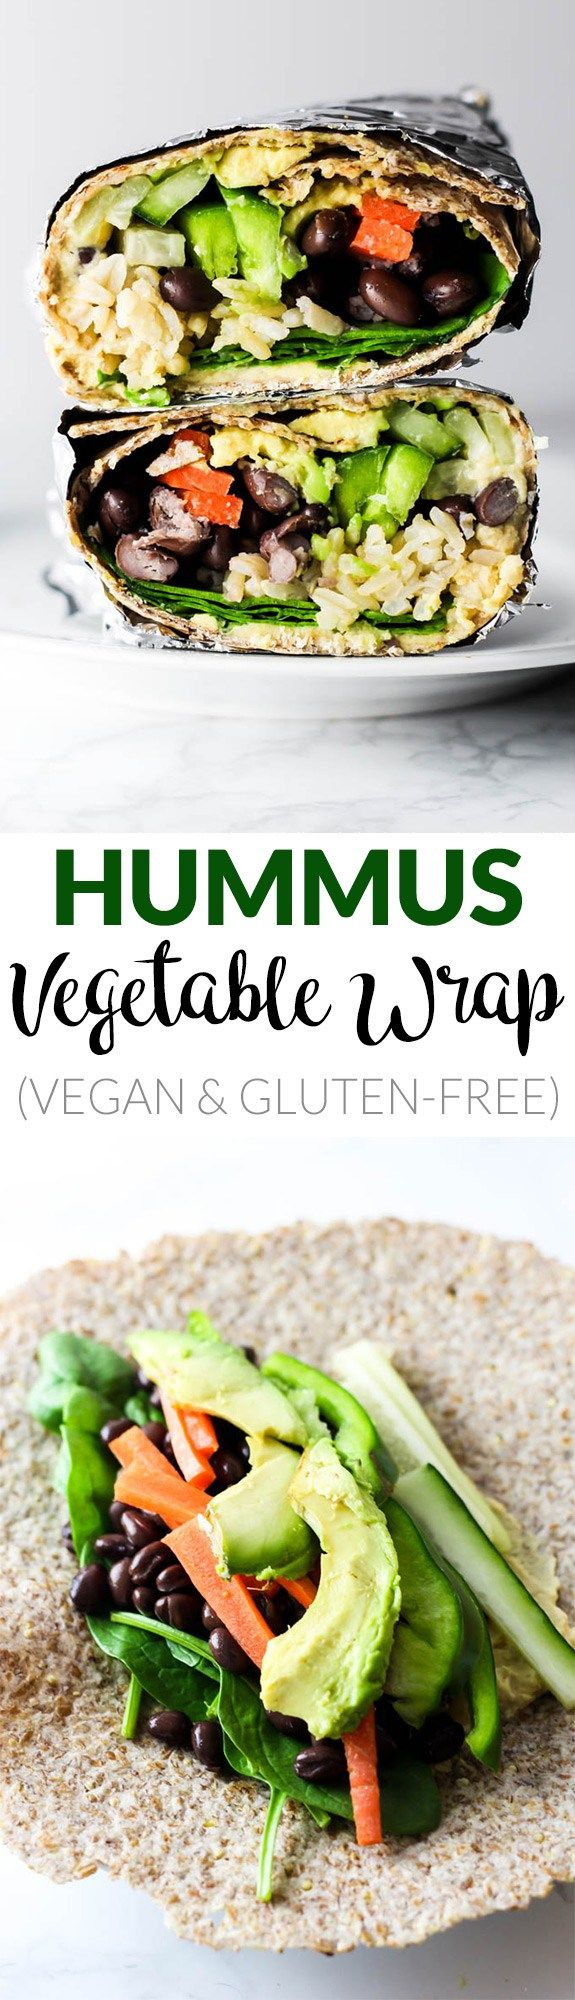 This Hummus Vegetable Wrap is a great on-the-go lunch option! Stuff it with all of your favorite vegetables, beans & creamy